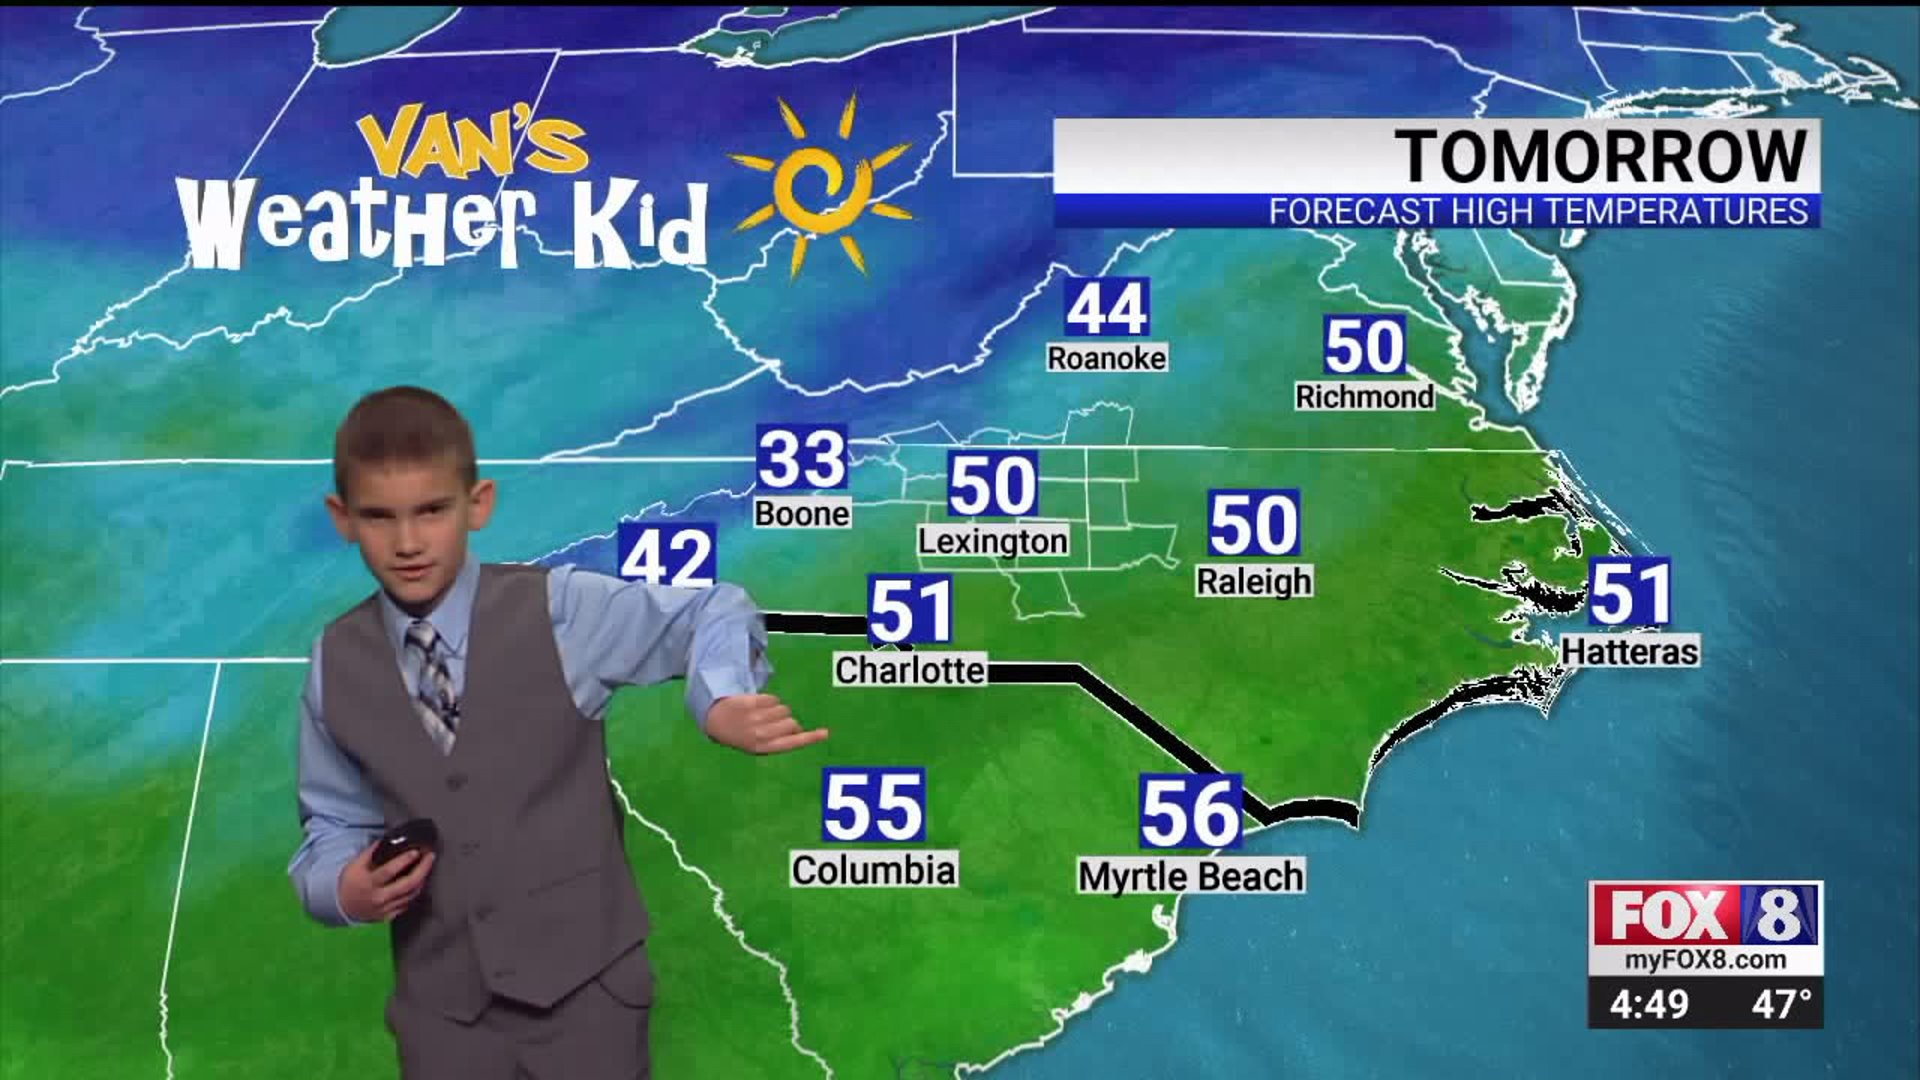 Van's Weather Kids: Alex Blackwelder